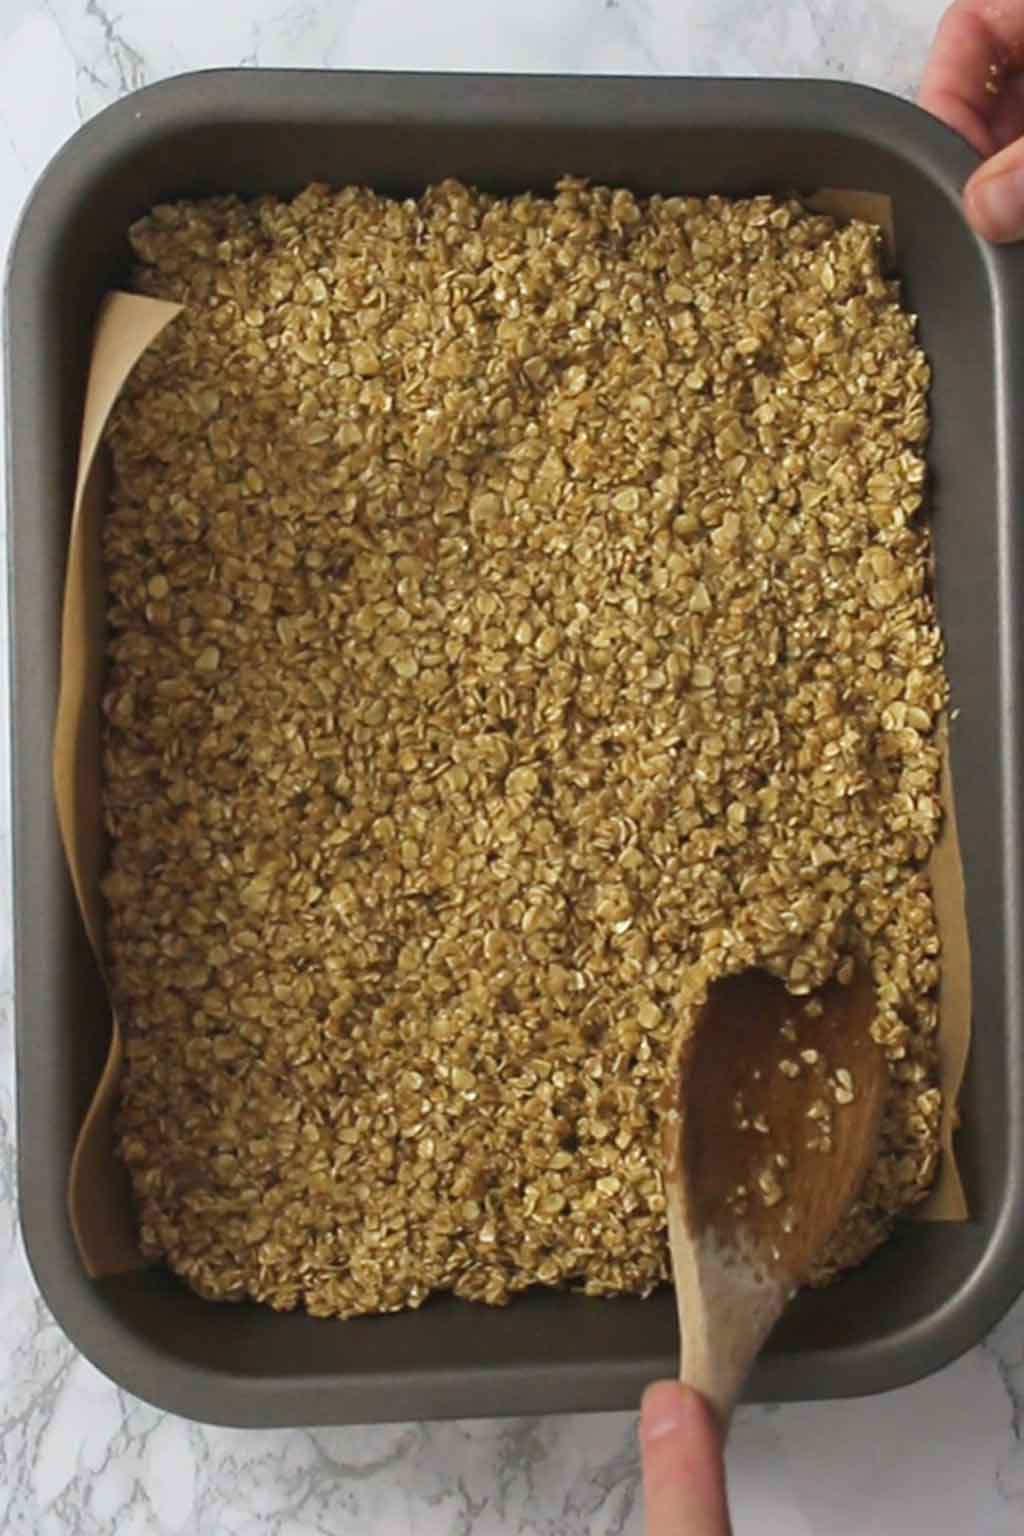 Packing flapjack mix into the tin